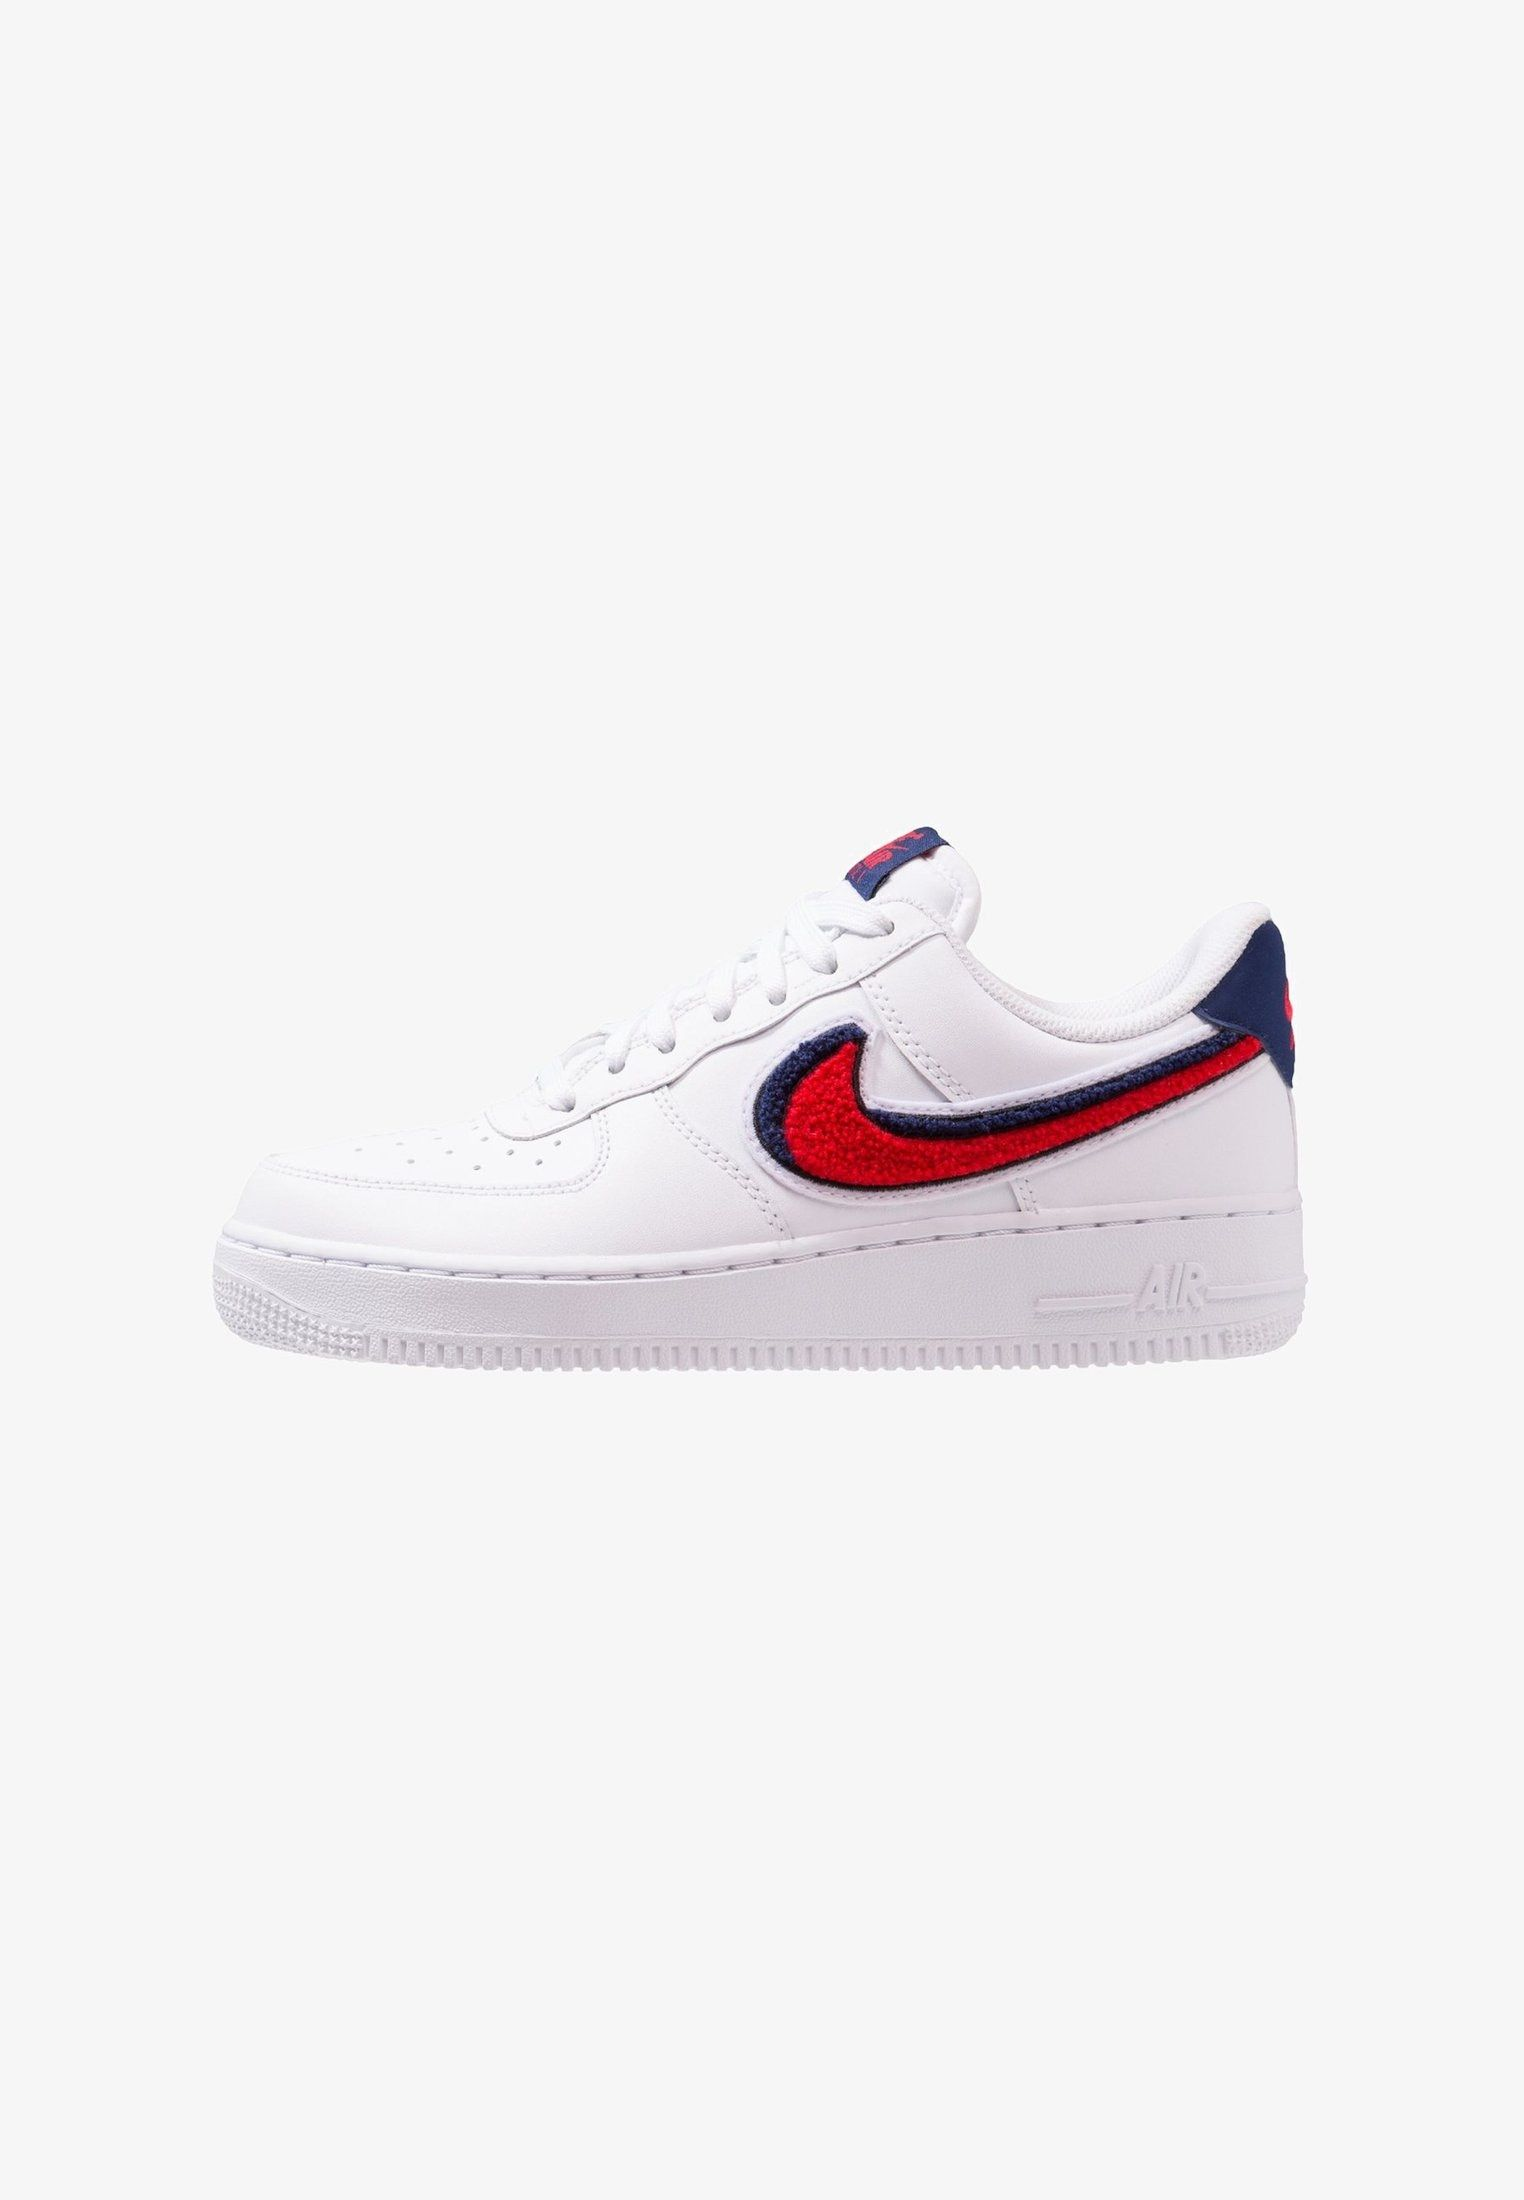 Nike Sportswear Air Force 1 07 Lv8 Baskets Basses White Univ Red Blue Void Zalando Fr Nike Sportswear Nike White Nikes